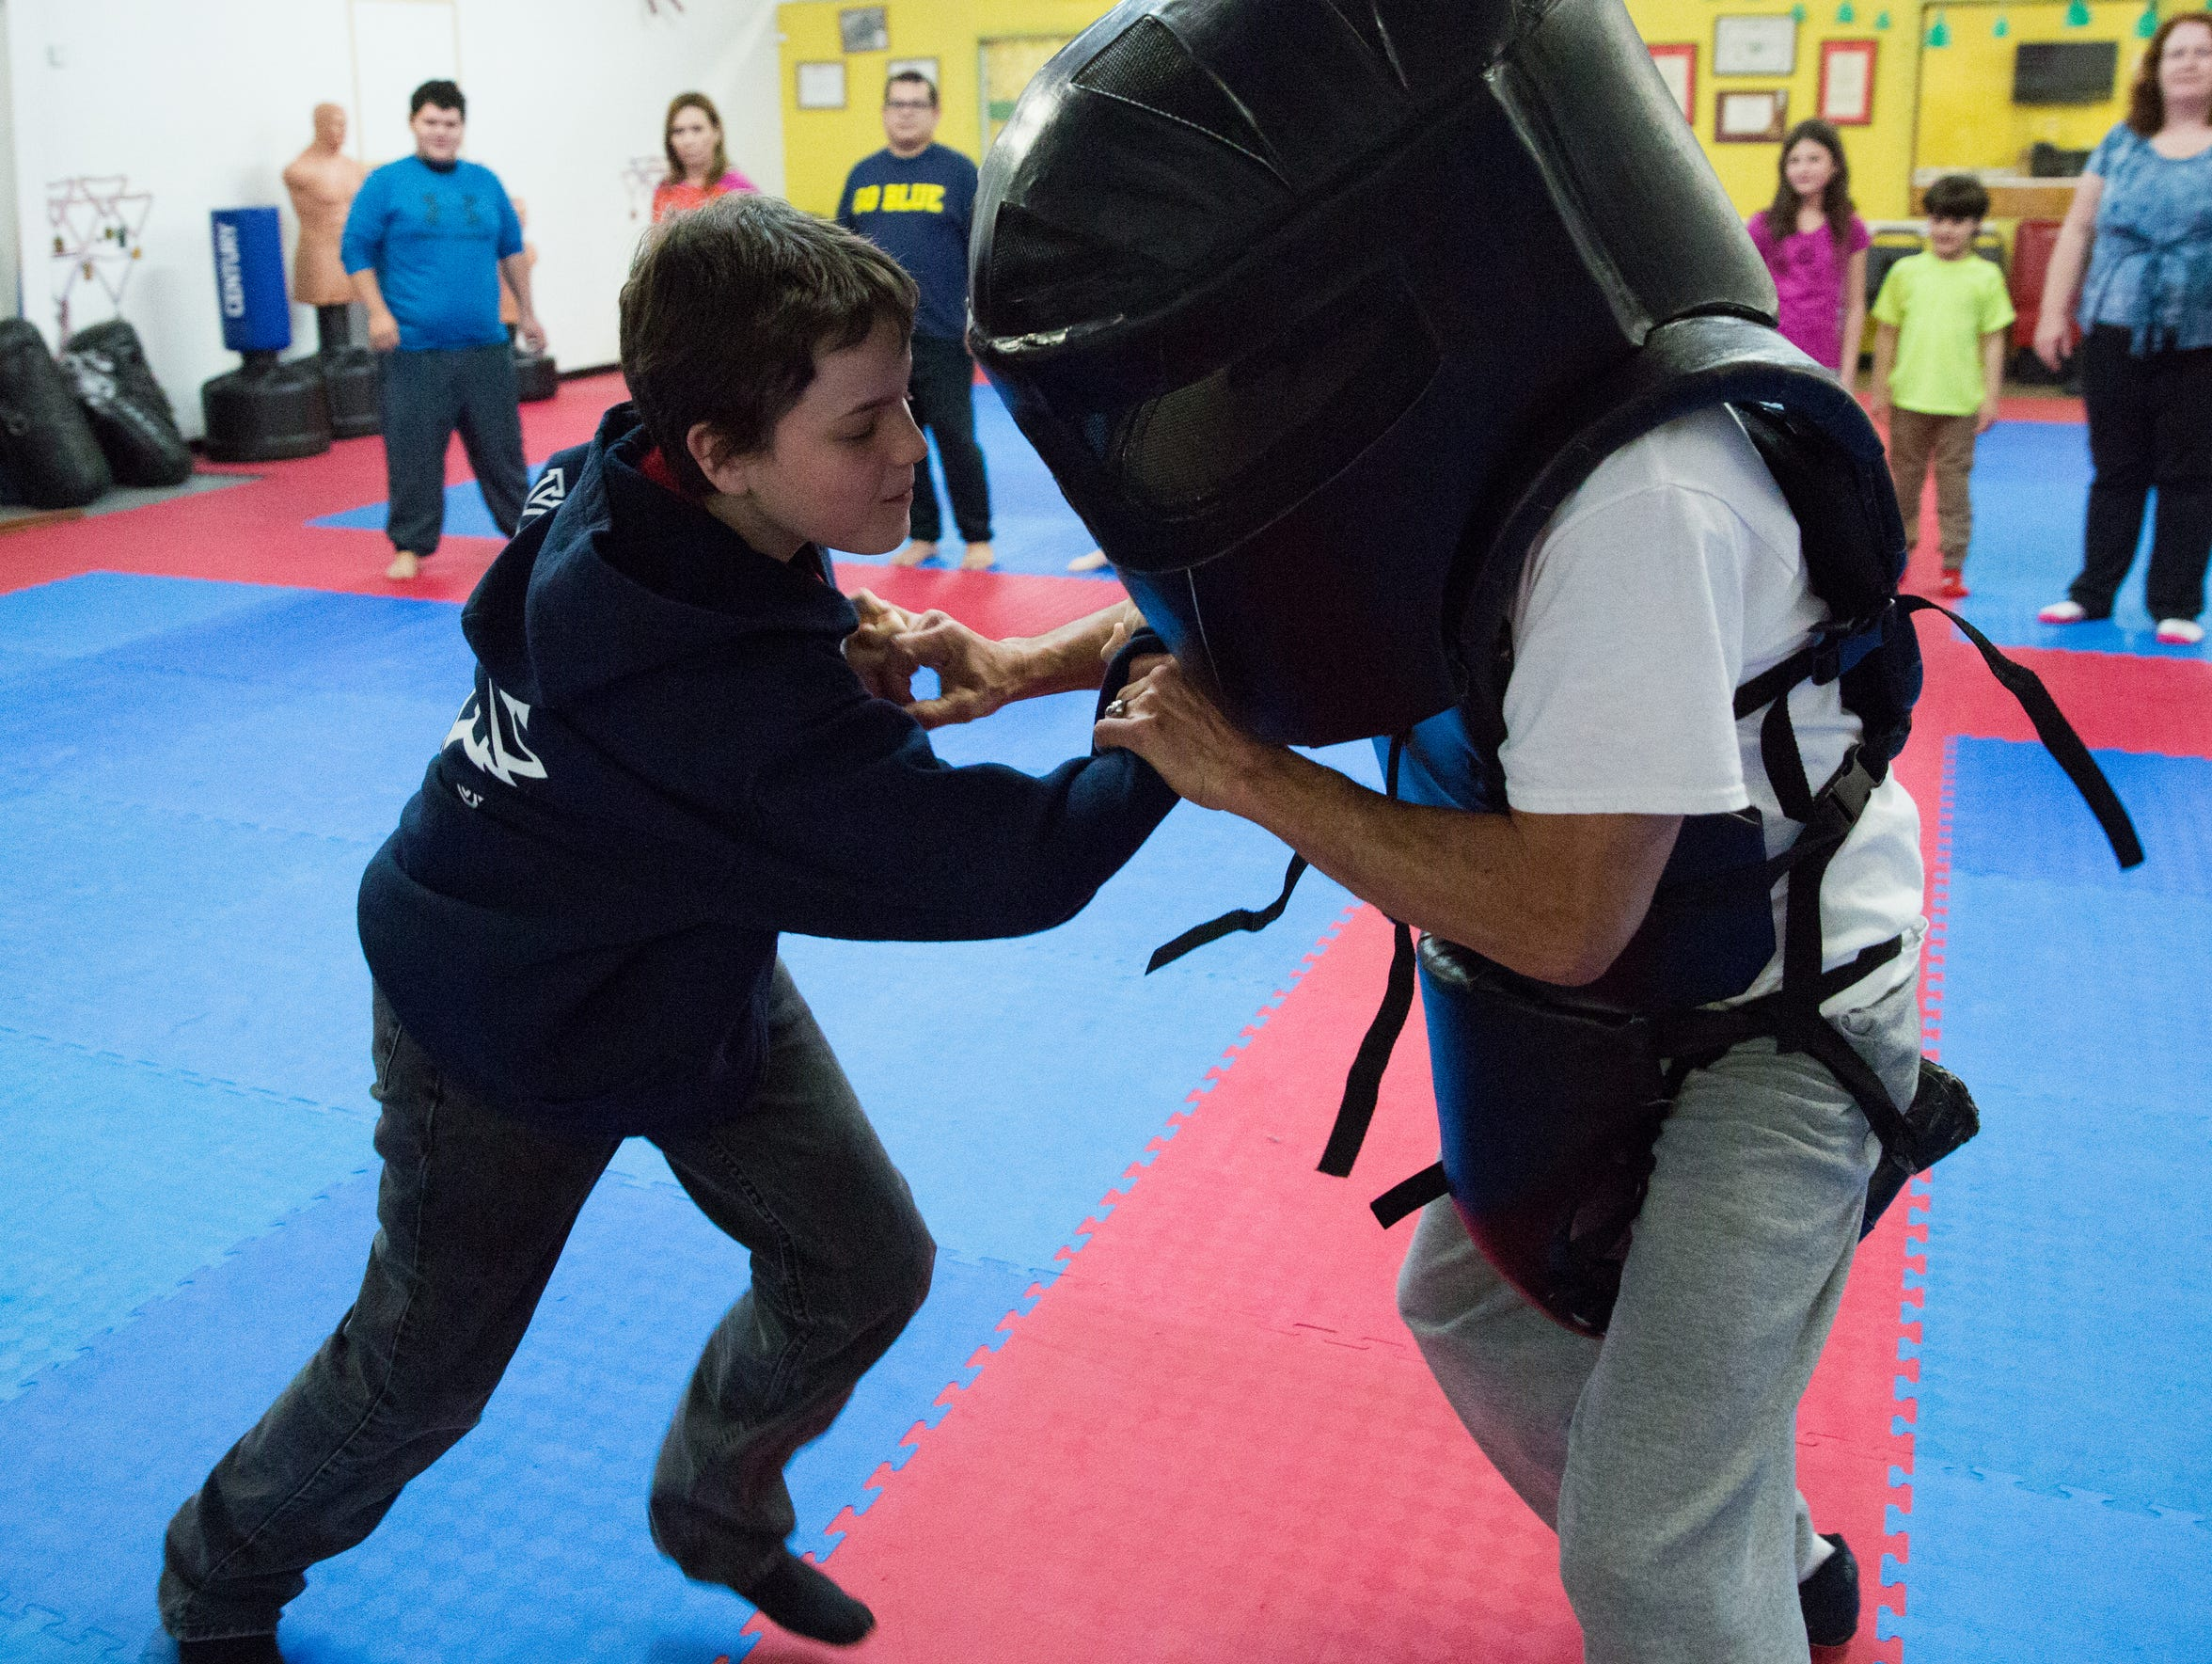 Zack Lackey, 13, practices self-defense techniques